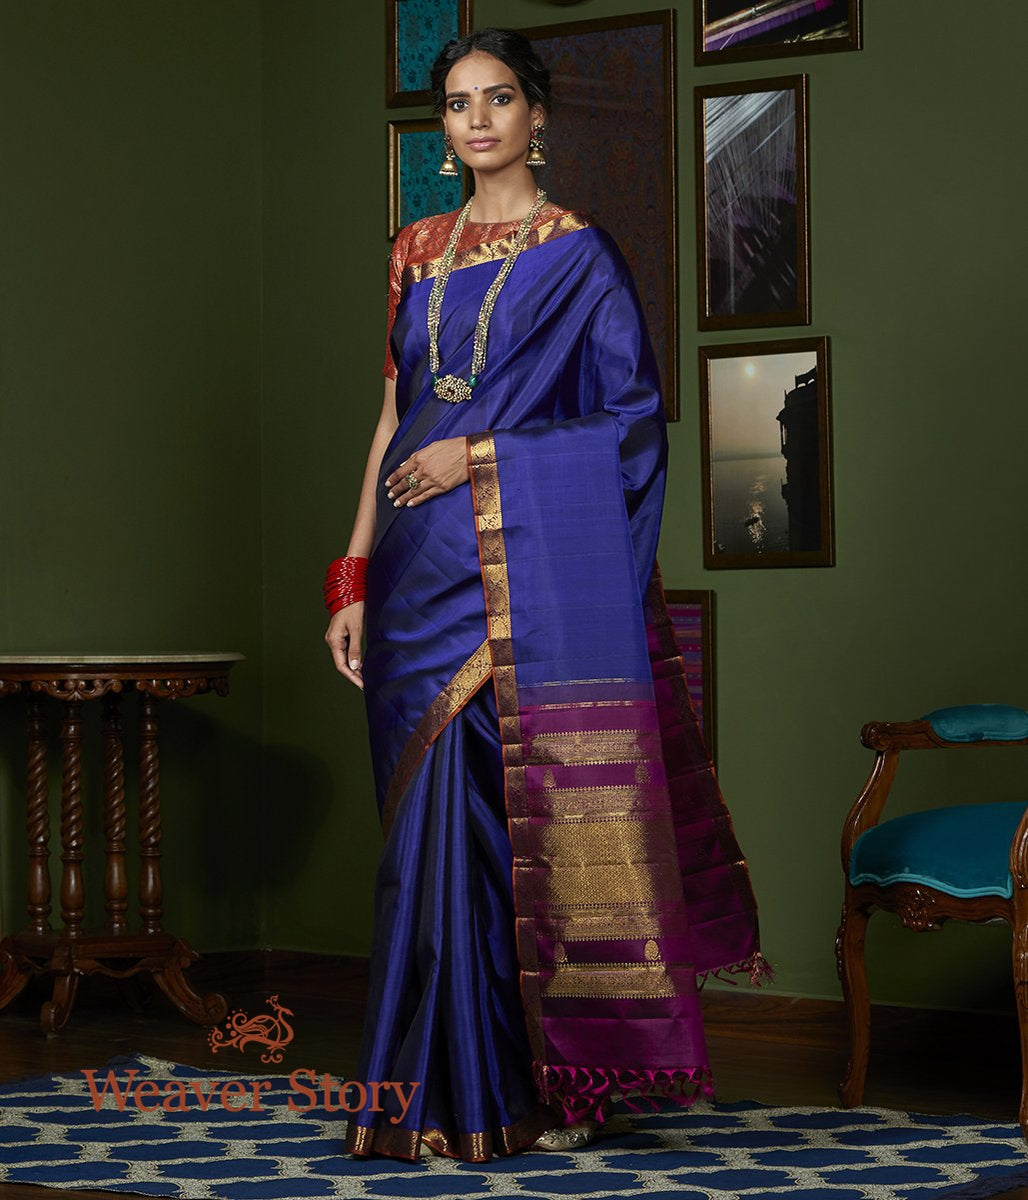 Handwoven Purple Pure Zari Kanjivaram Saree with Rust Floral Border